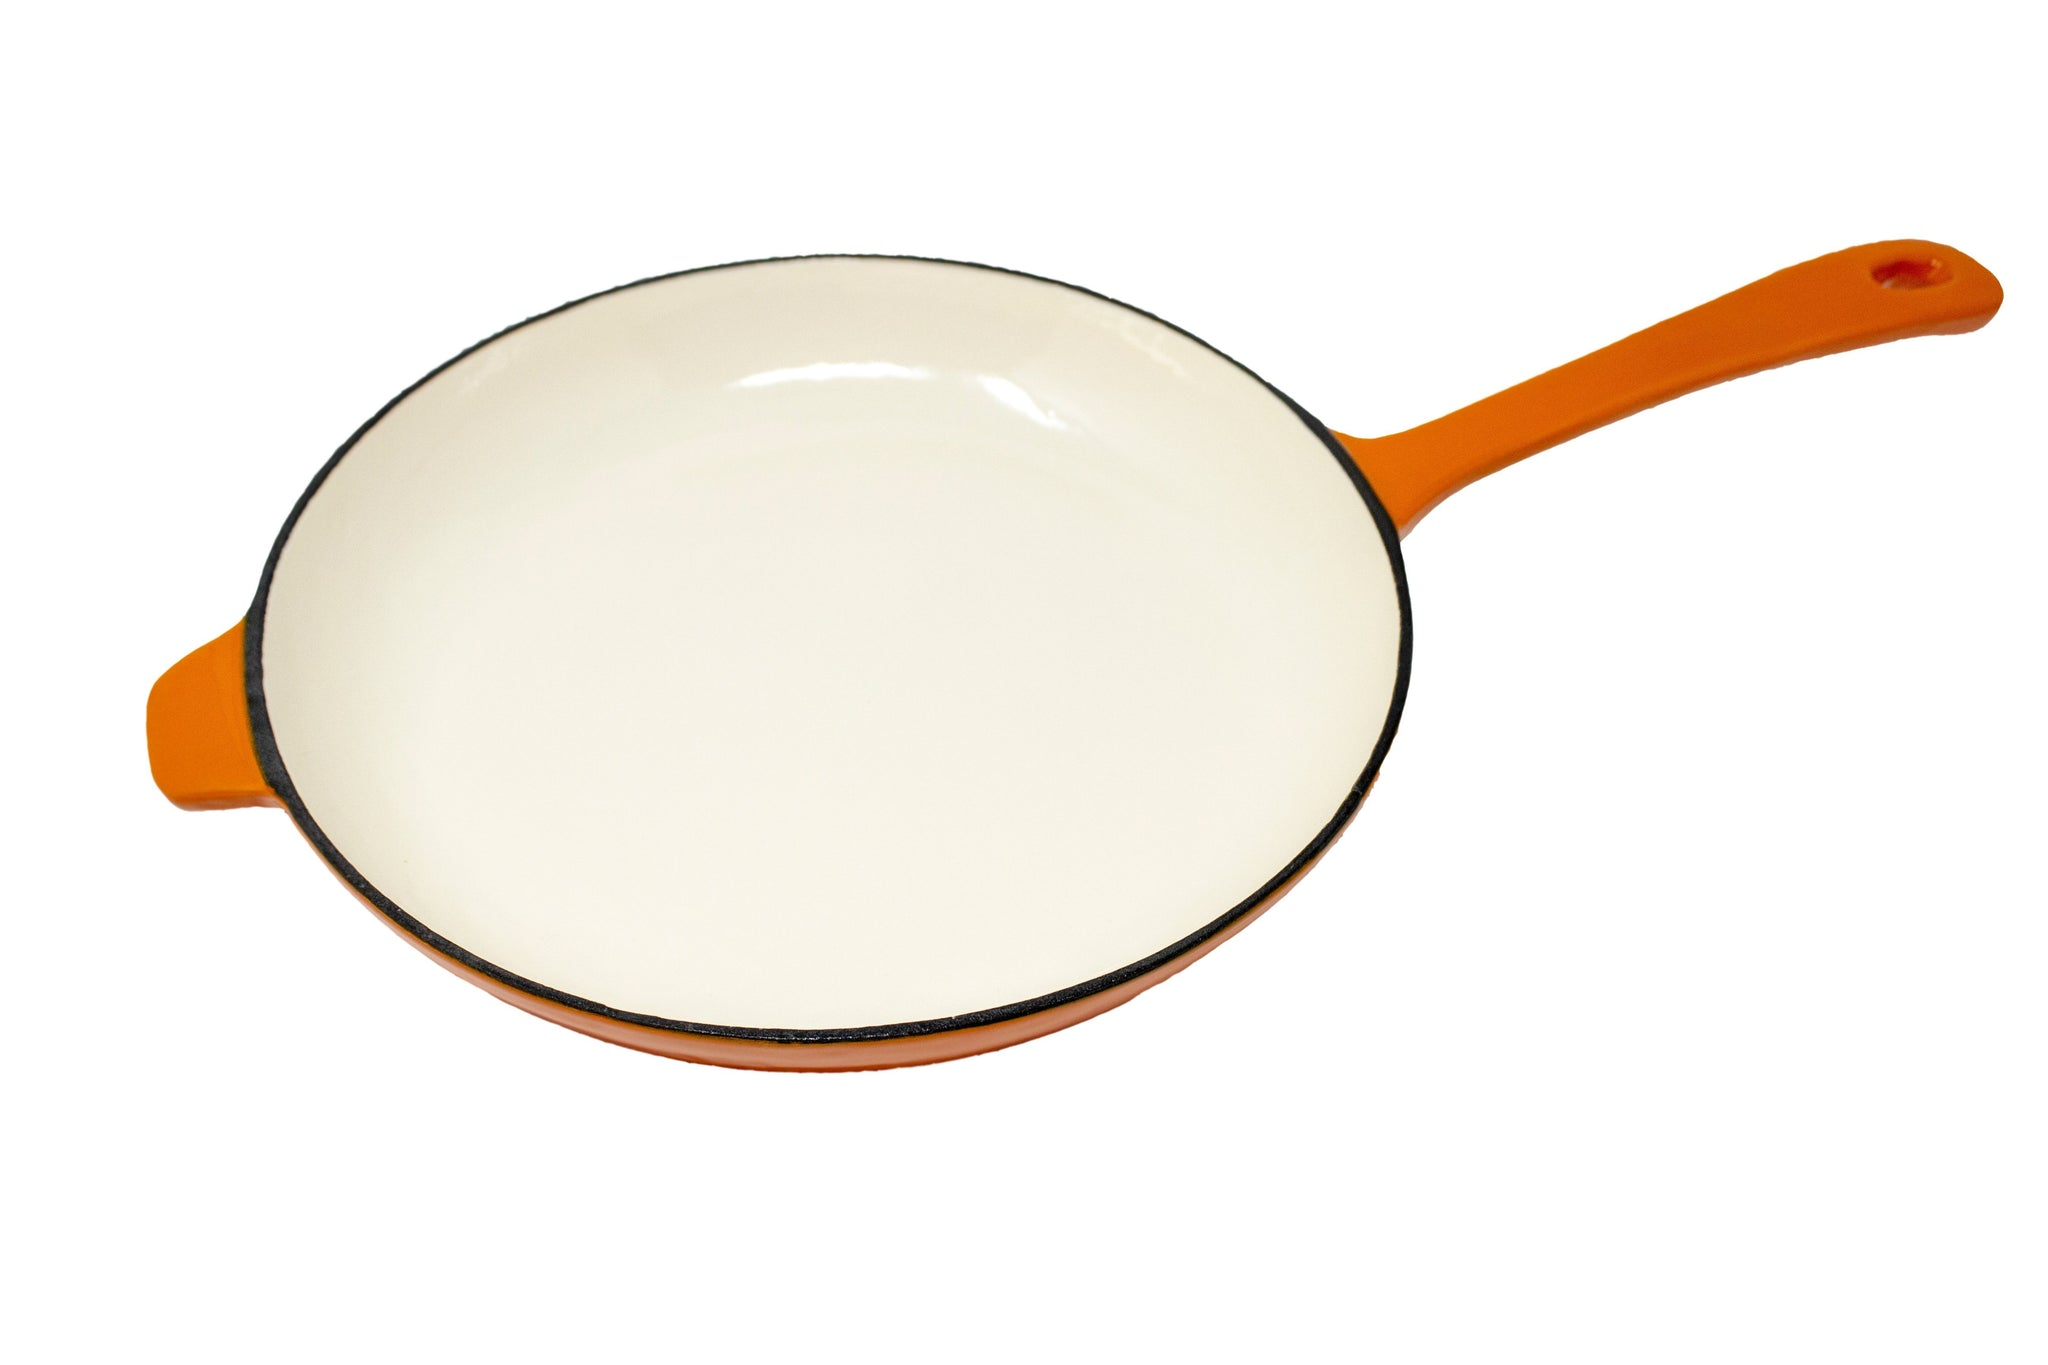 28cm Cast Iron Fry Pan - Orange